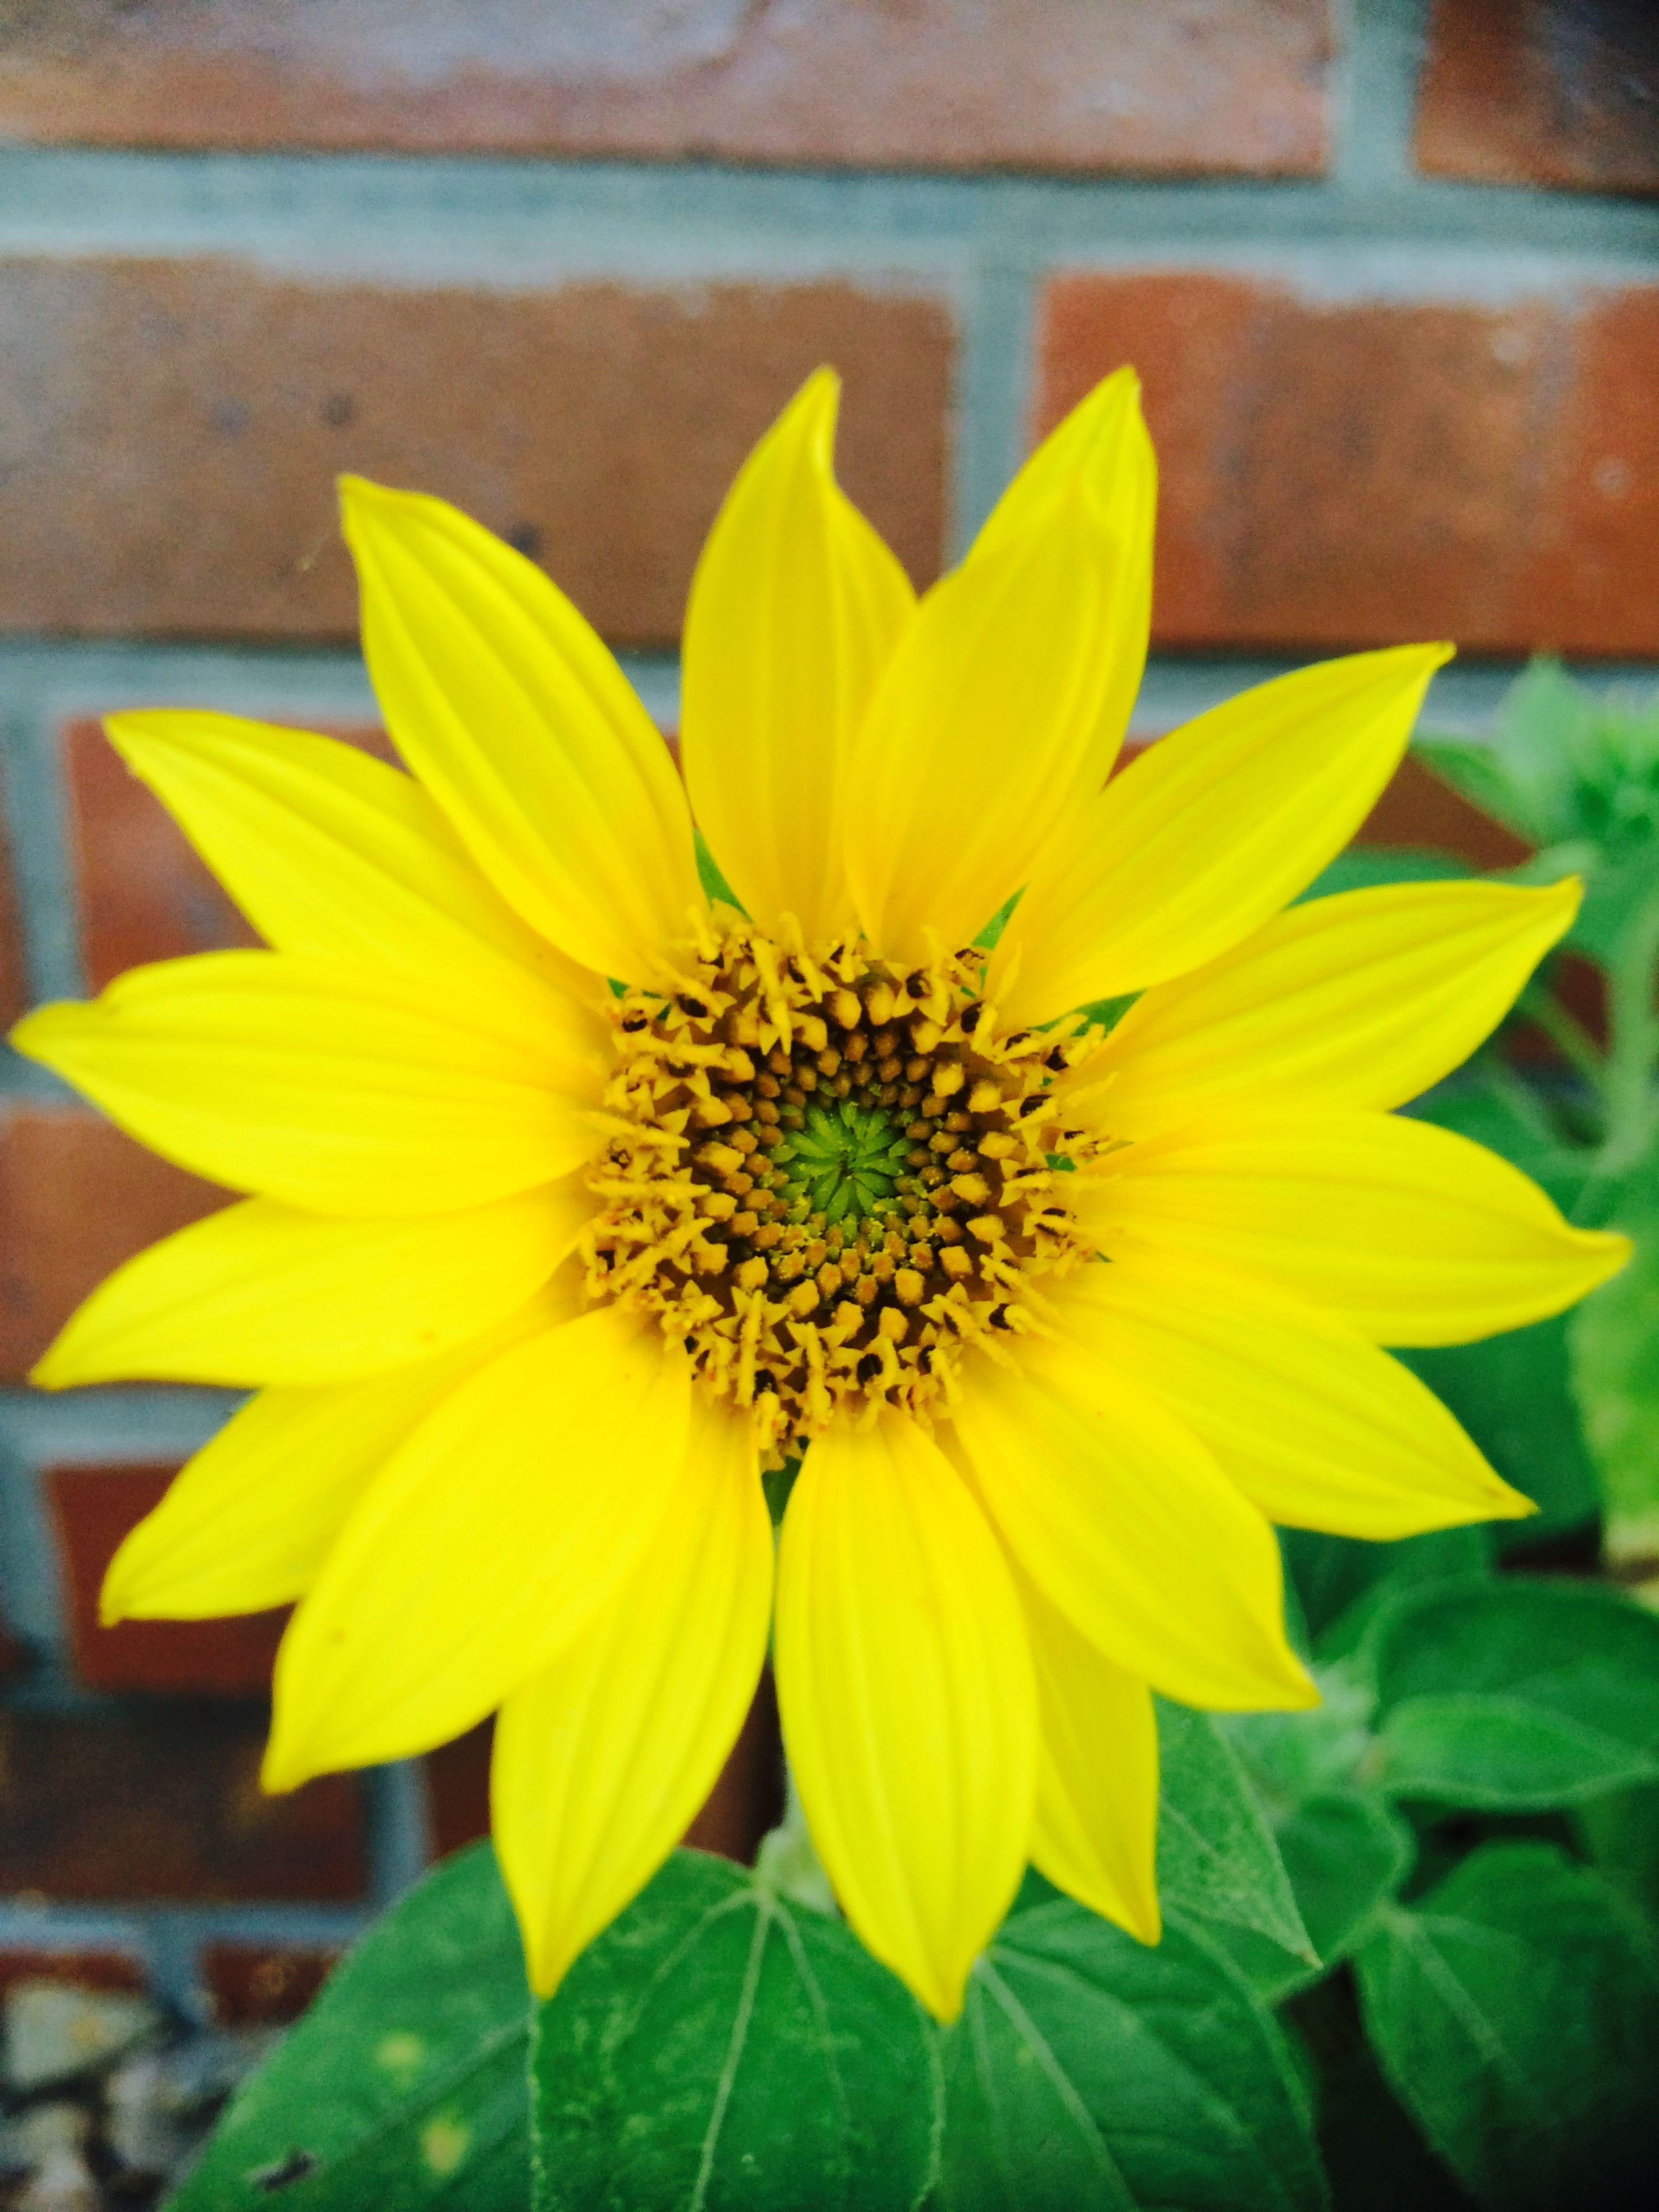 flower, petal, flower head, yellow, freshness, fragility, growth, close-up, pollen, blooming, beauty in nature, single flower, plant, nature, focus on foreground, leaf, in bloom, sunflower, day, outdoors